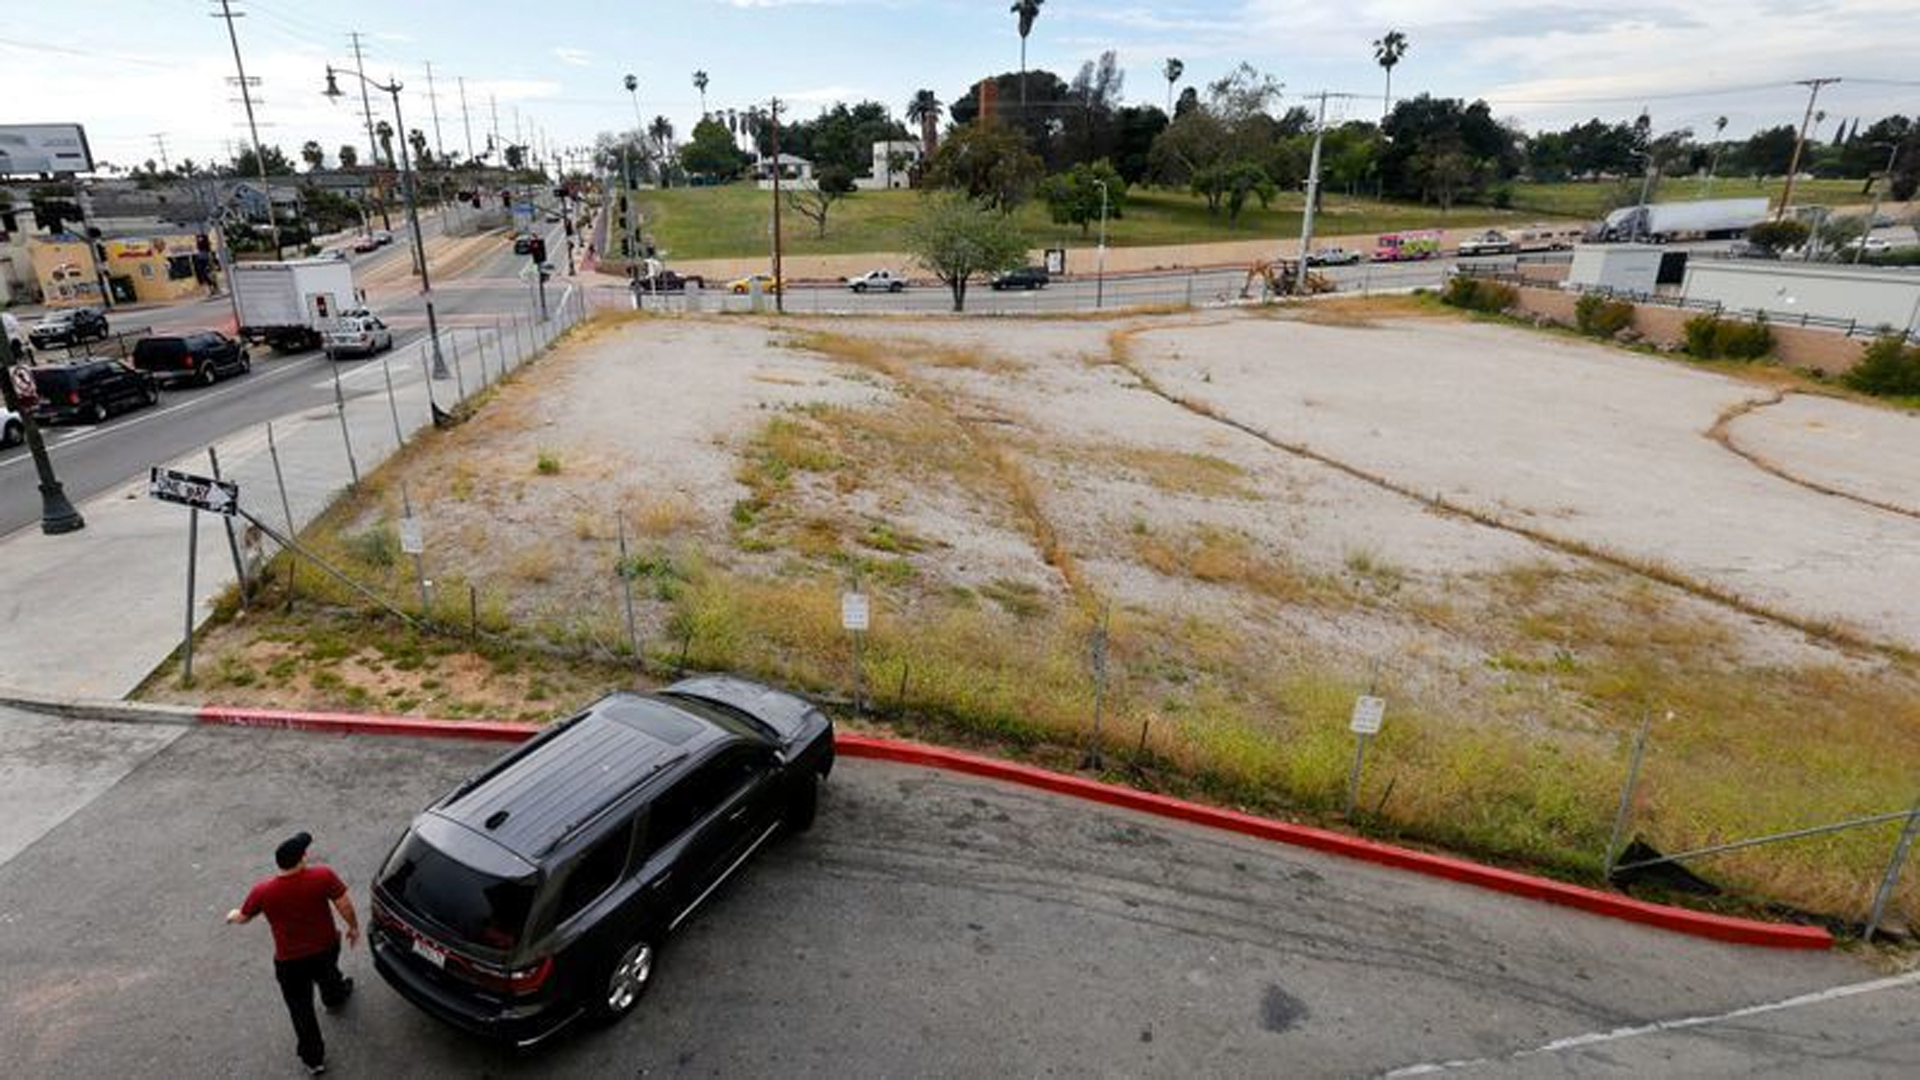 After Councilman Jose Huizar reversed course, the Los Angeles City Council cleared the way Tuesday for construction of a homeless housing project on this lot in Boyle Heights next to the popular El Mercado shopping center. (Credit: Mel Melcon / Los Angeles Times)